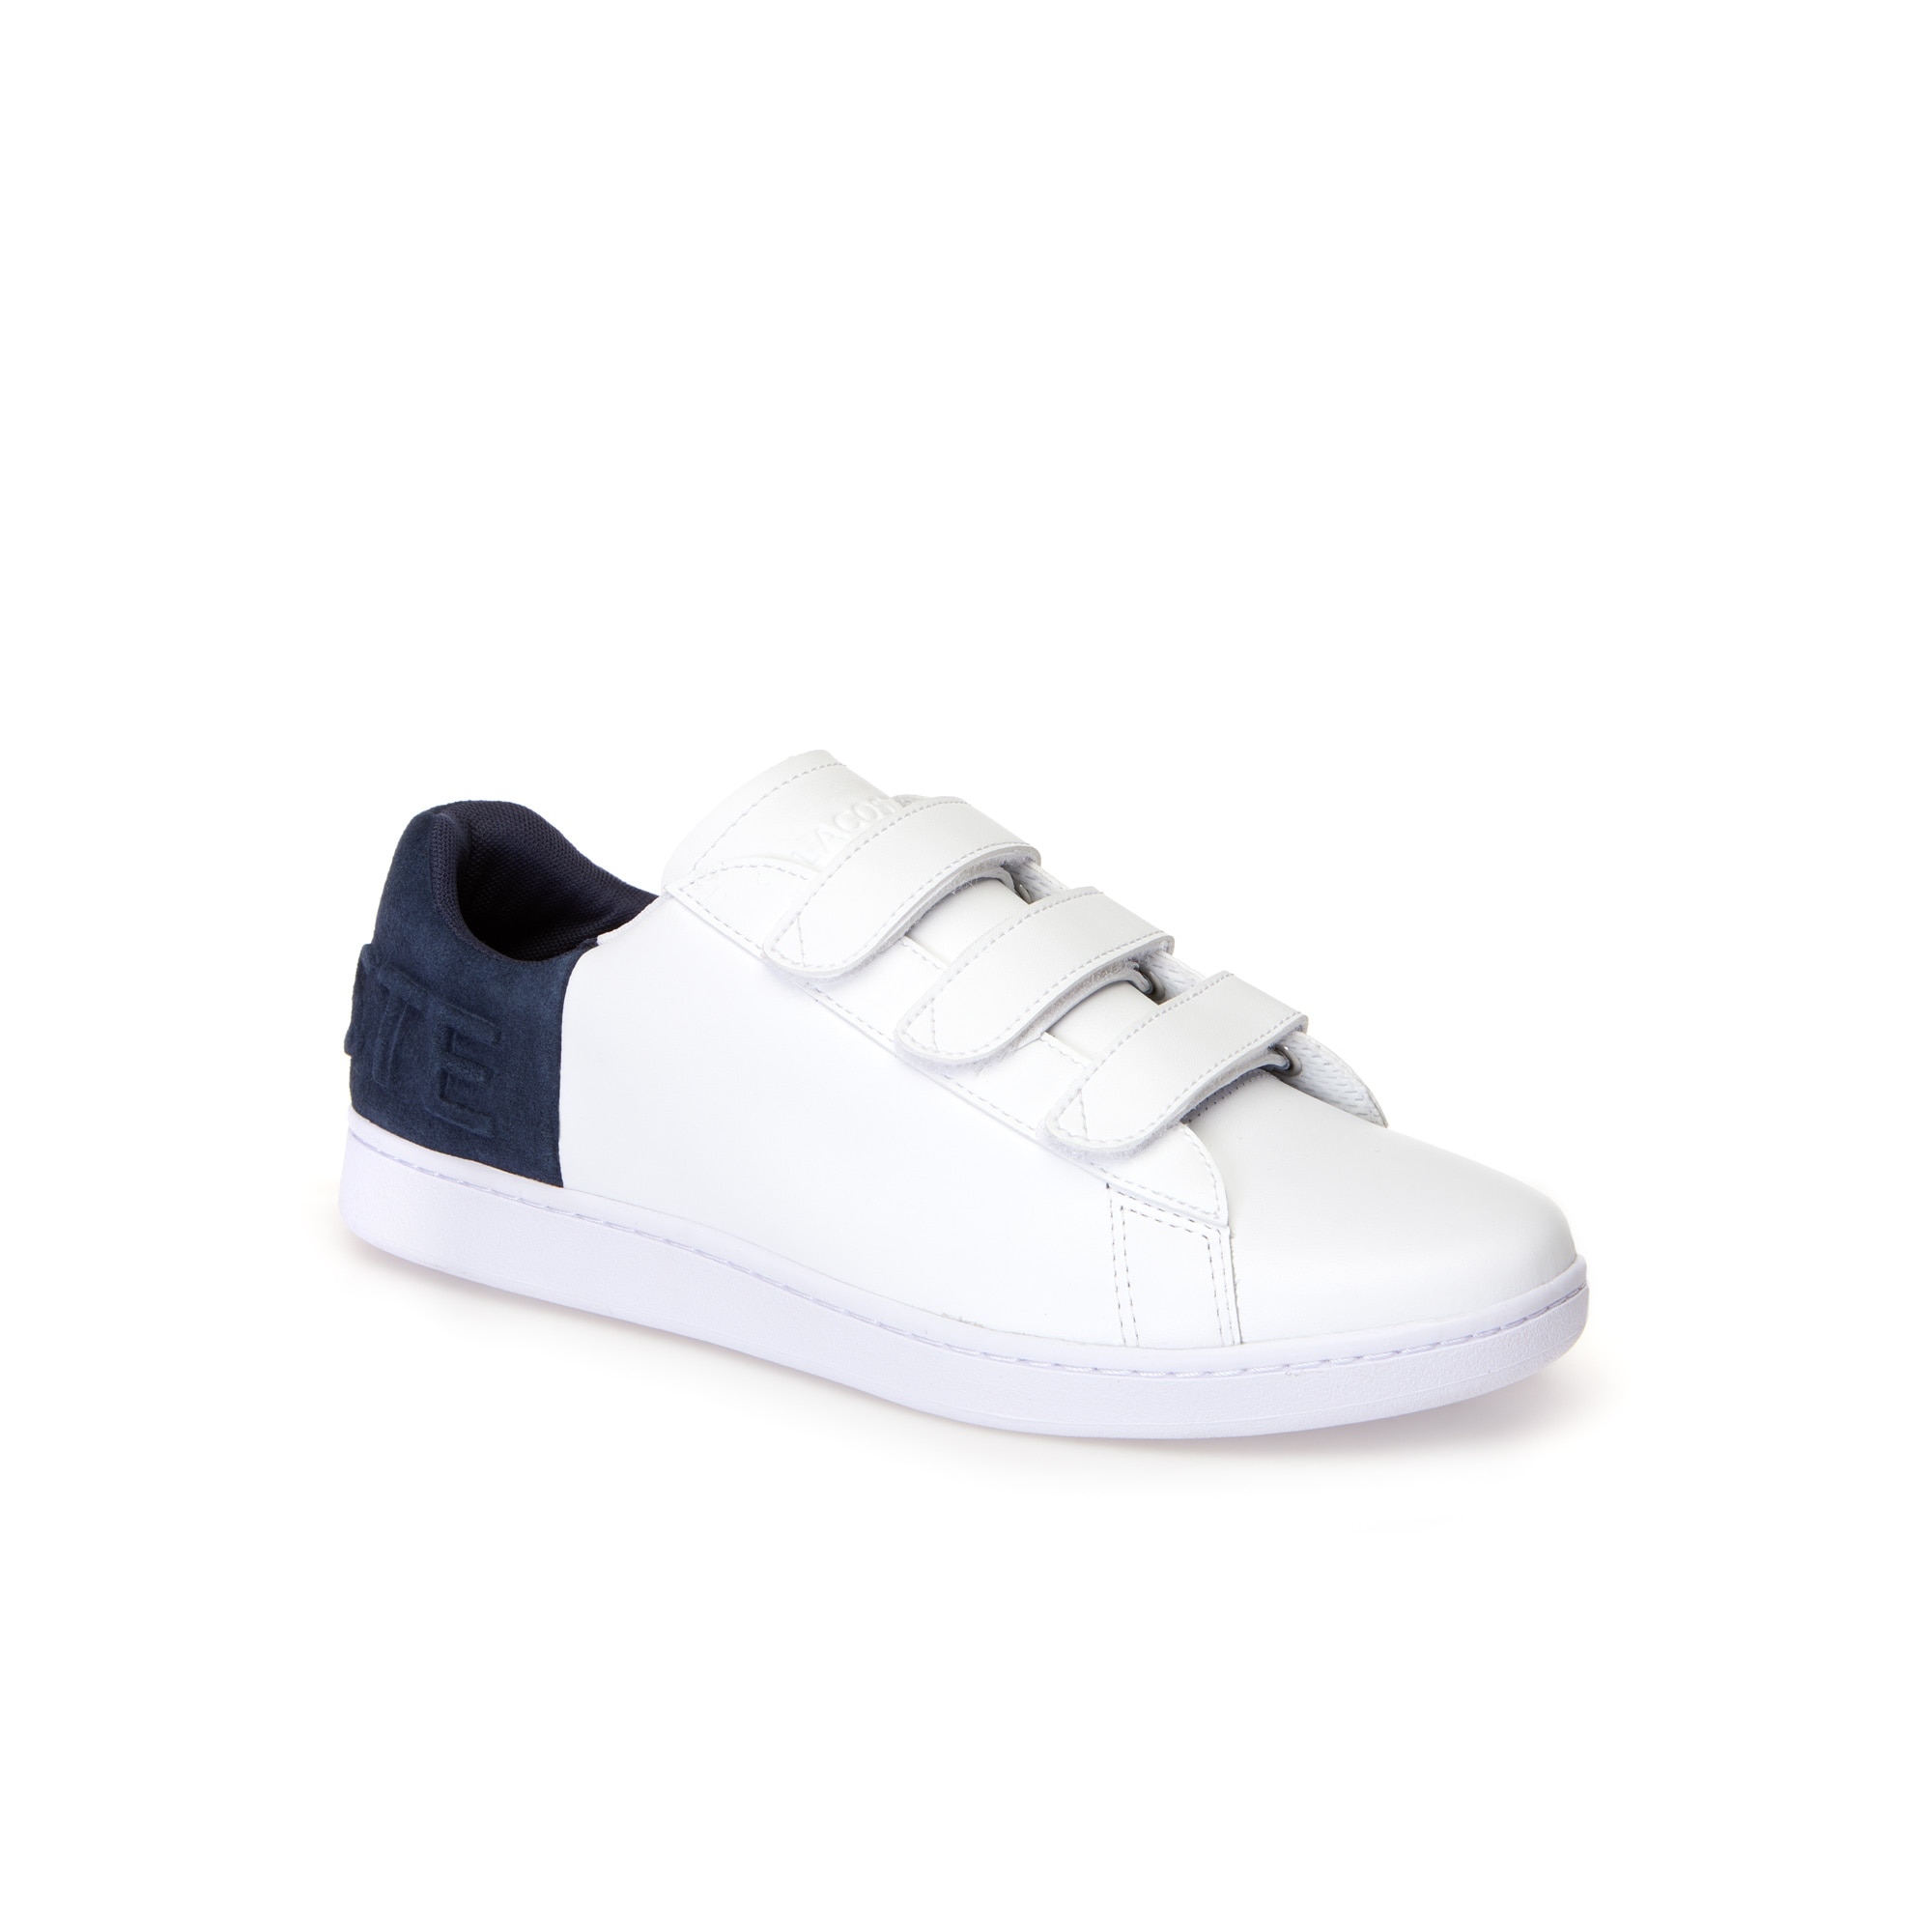 689194a59d265 Men s Carnaby Evo Strap Leather and Suede Trainers